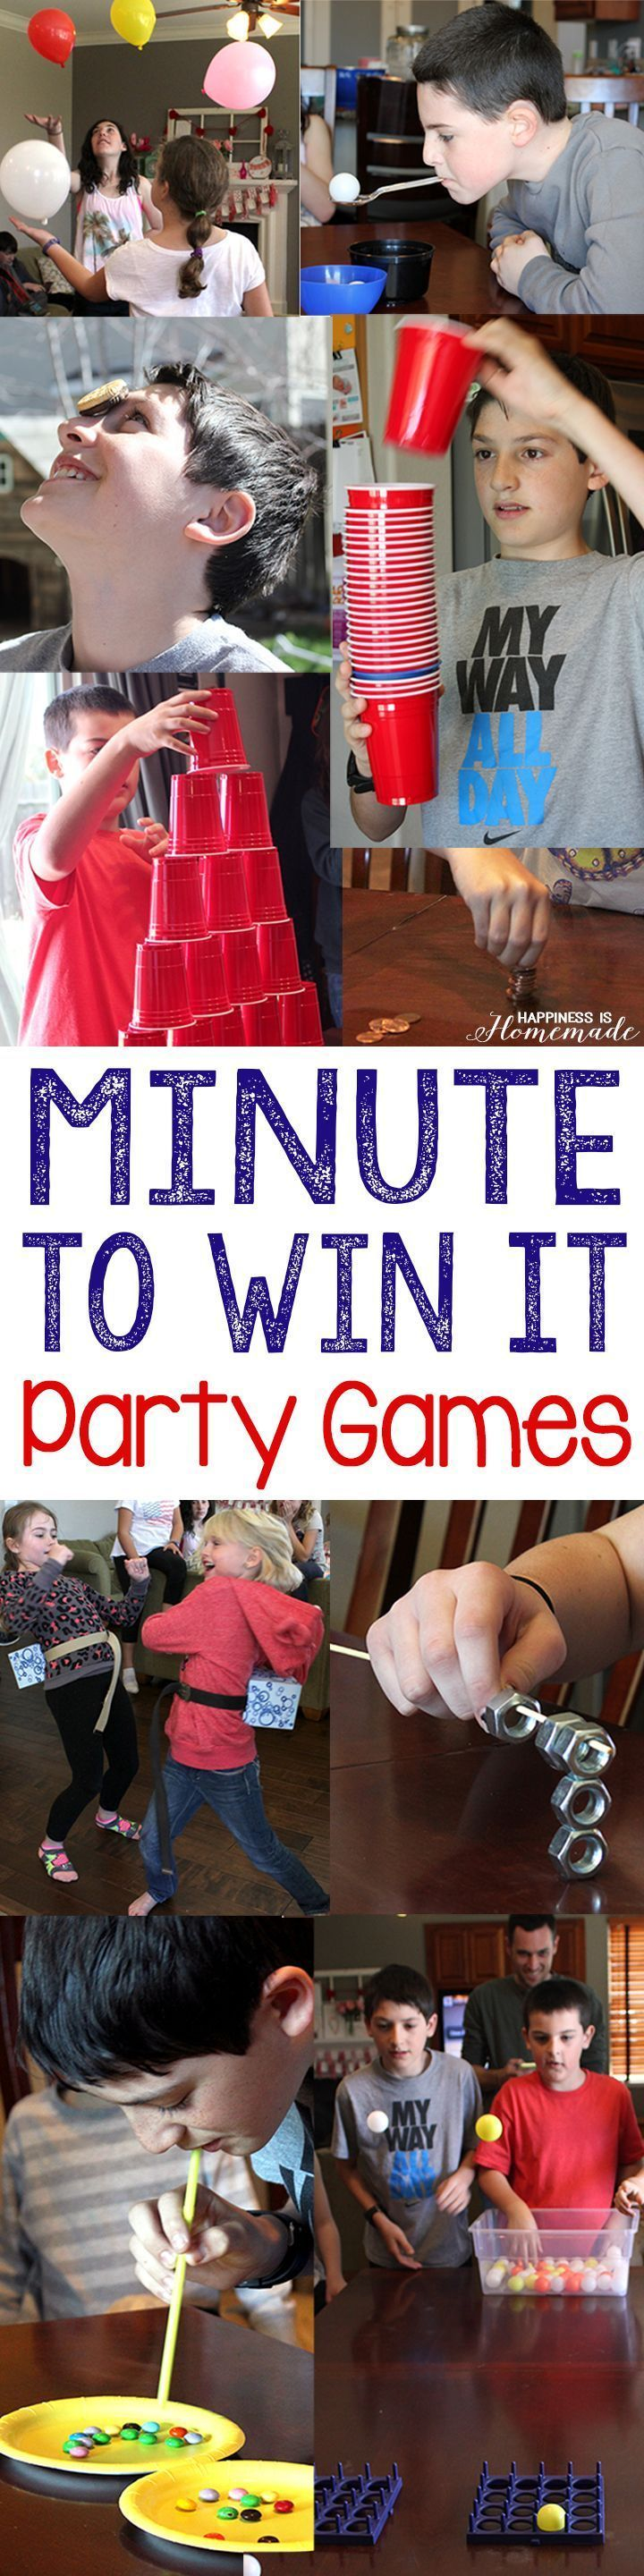 These 10 Minute to Win It games were perfect for all ages (we had guests from ages 4-55 playing these games, and everyone had a blast!) – challenging enough for older children, but easy enough for everyone to join in the fun!